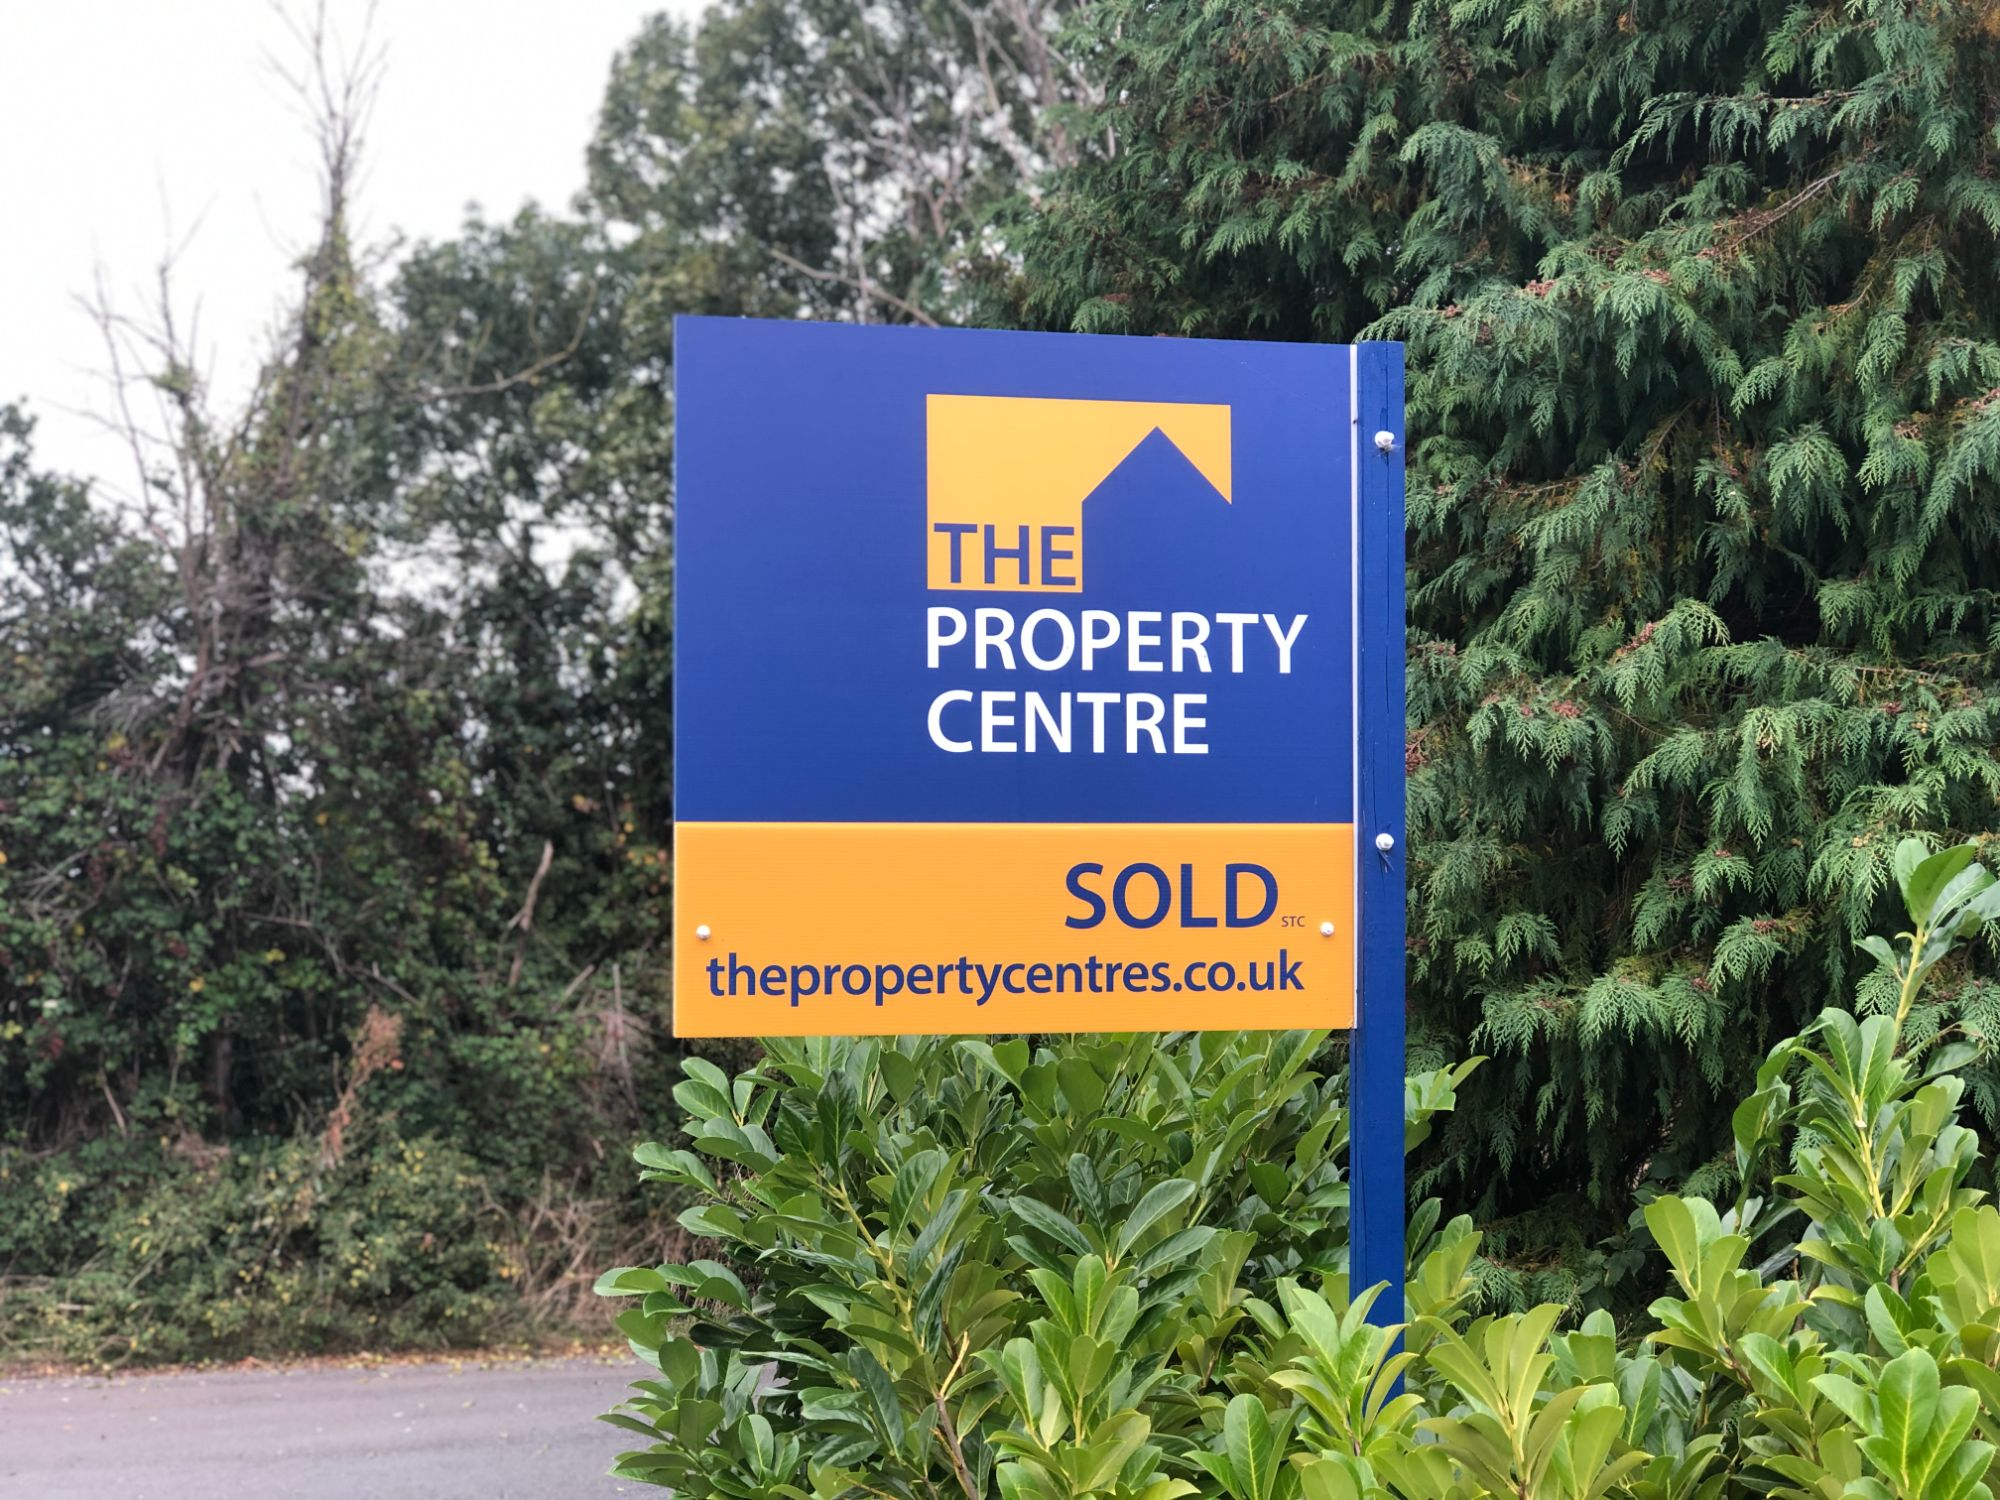 free stock image photo the property centre sold house sign